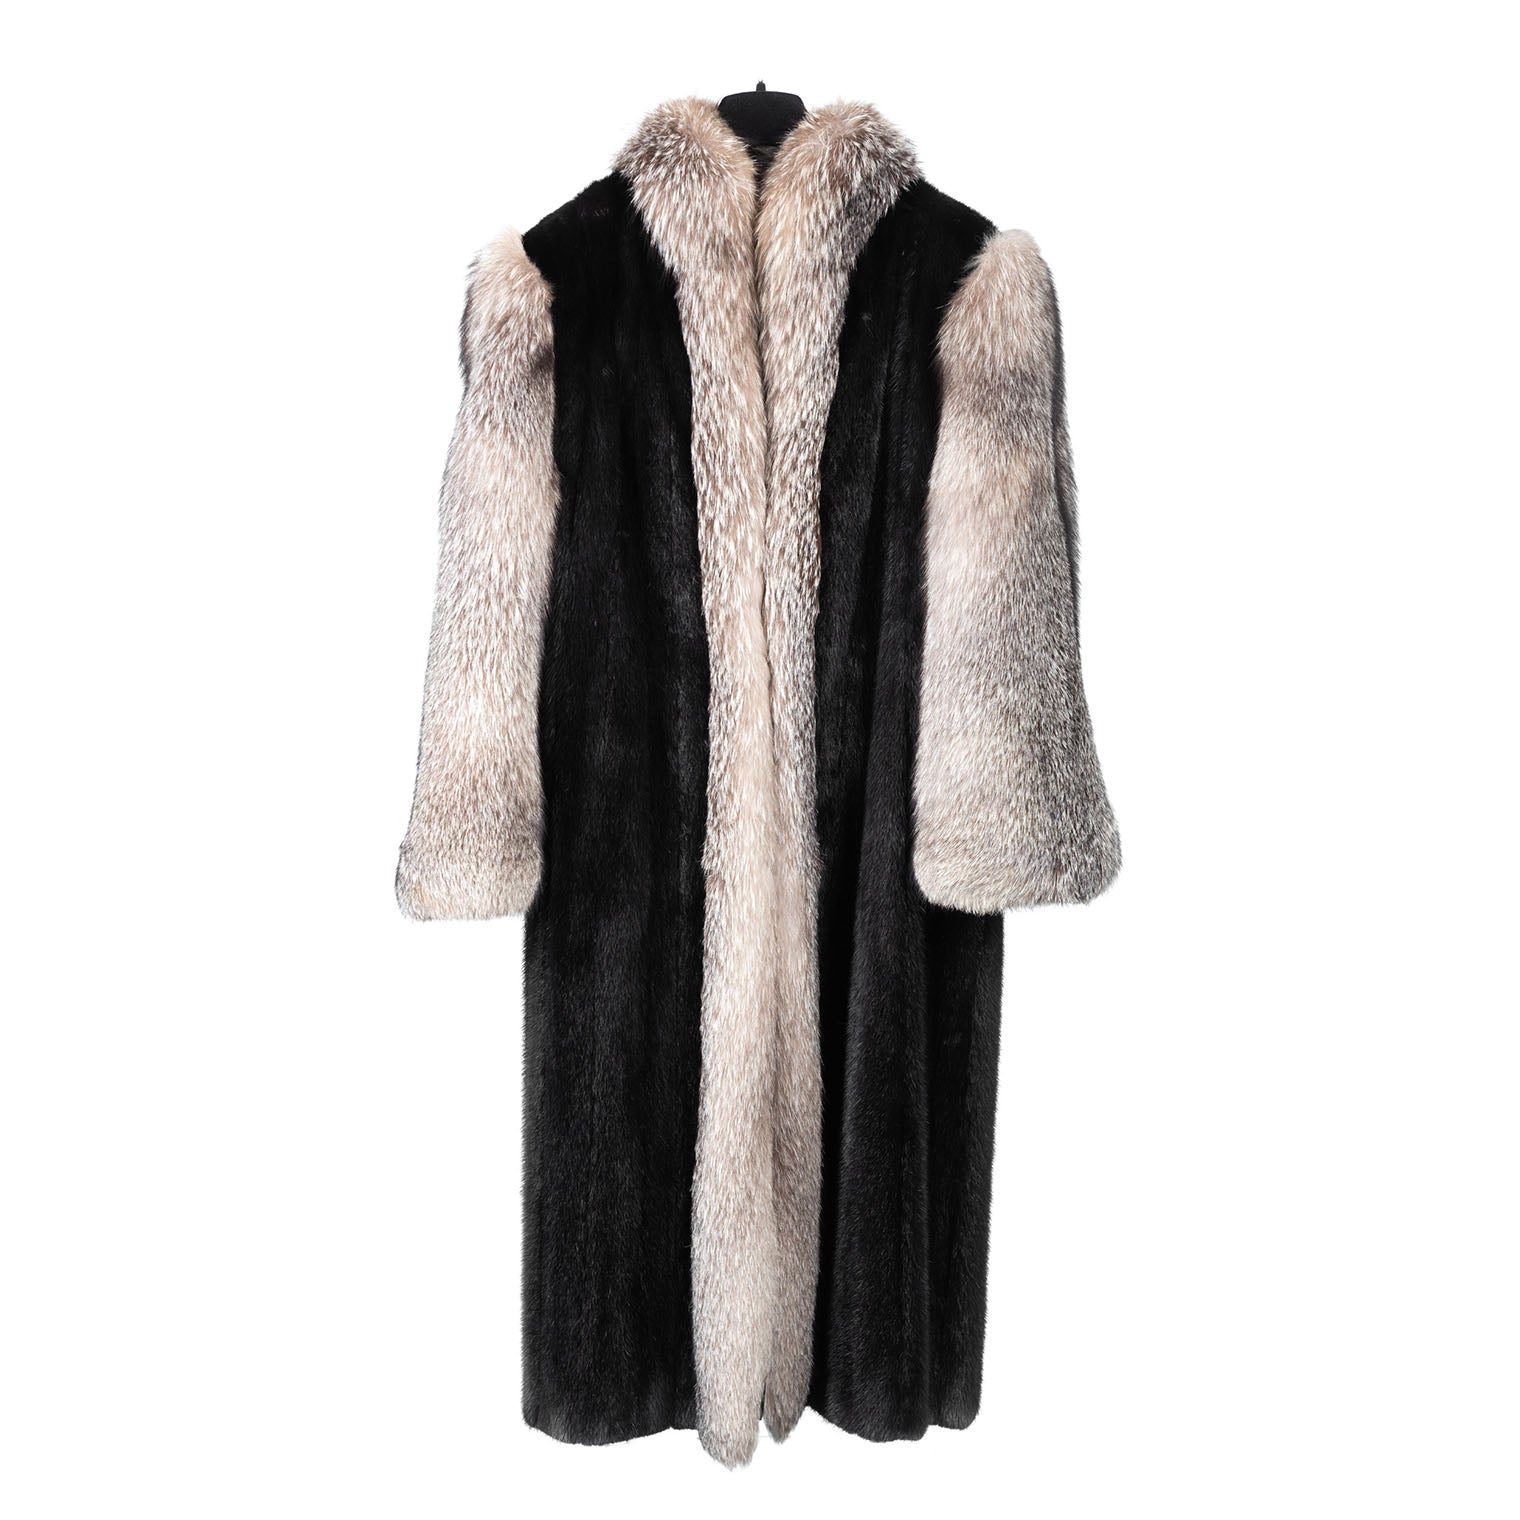 Black Mink Coat with Silver Fox Sleeves & Front